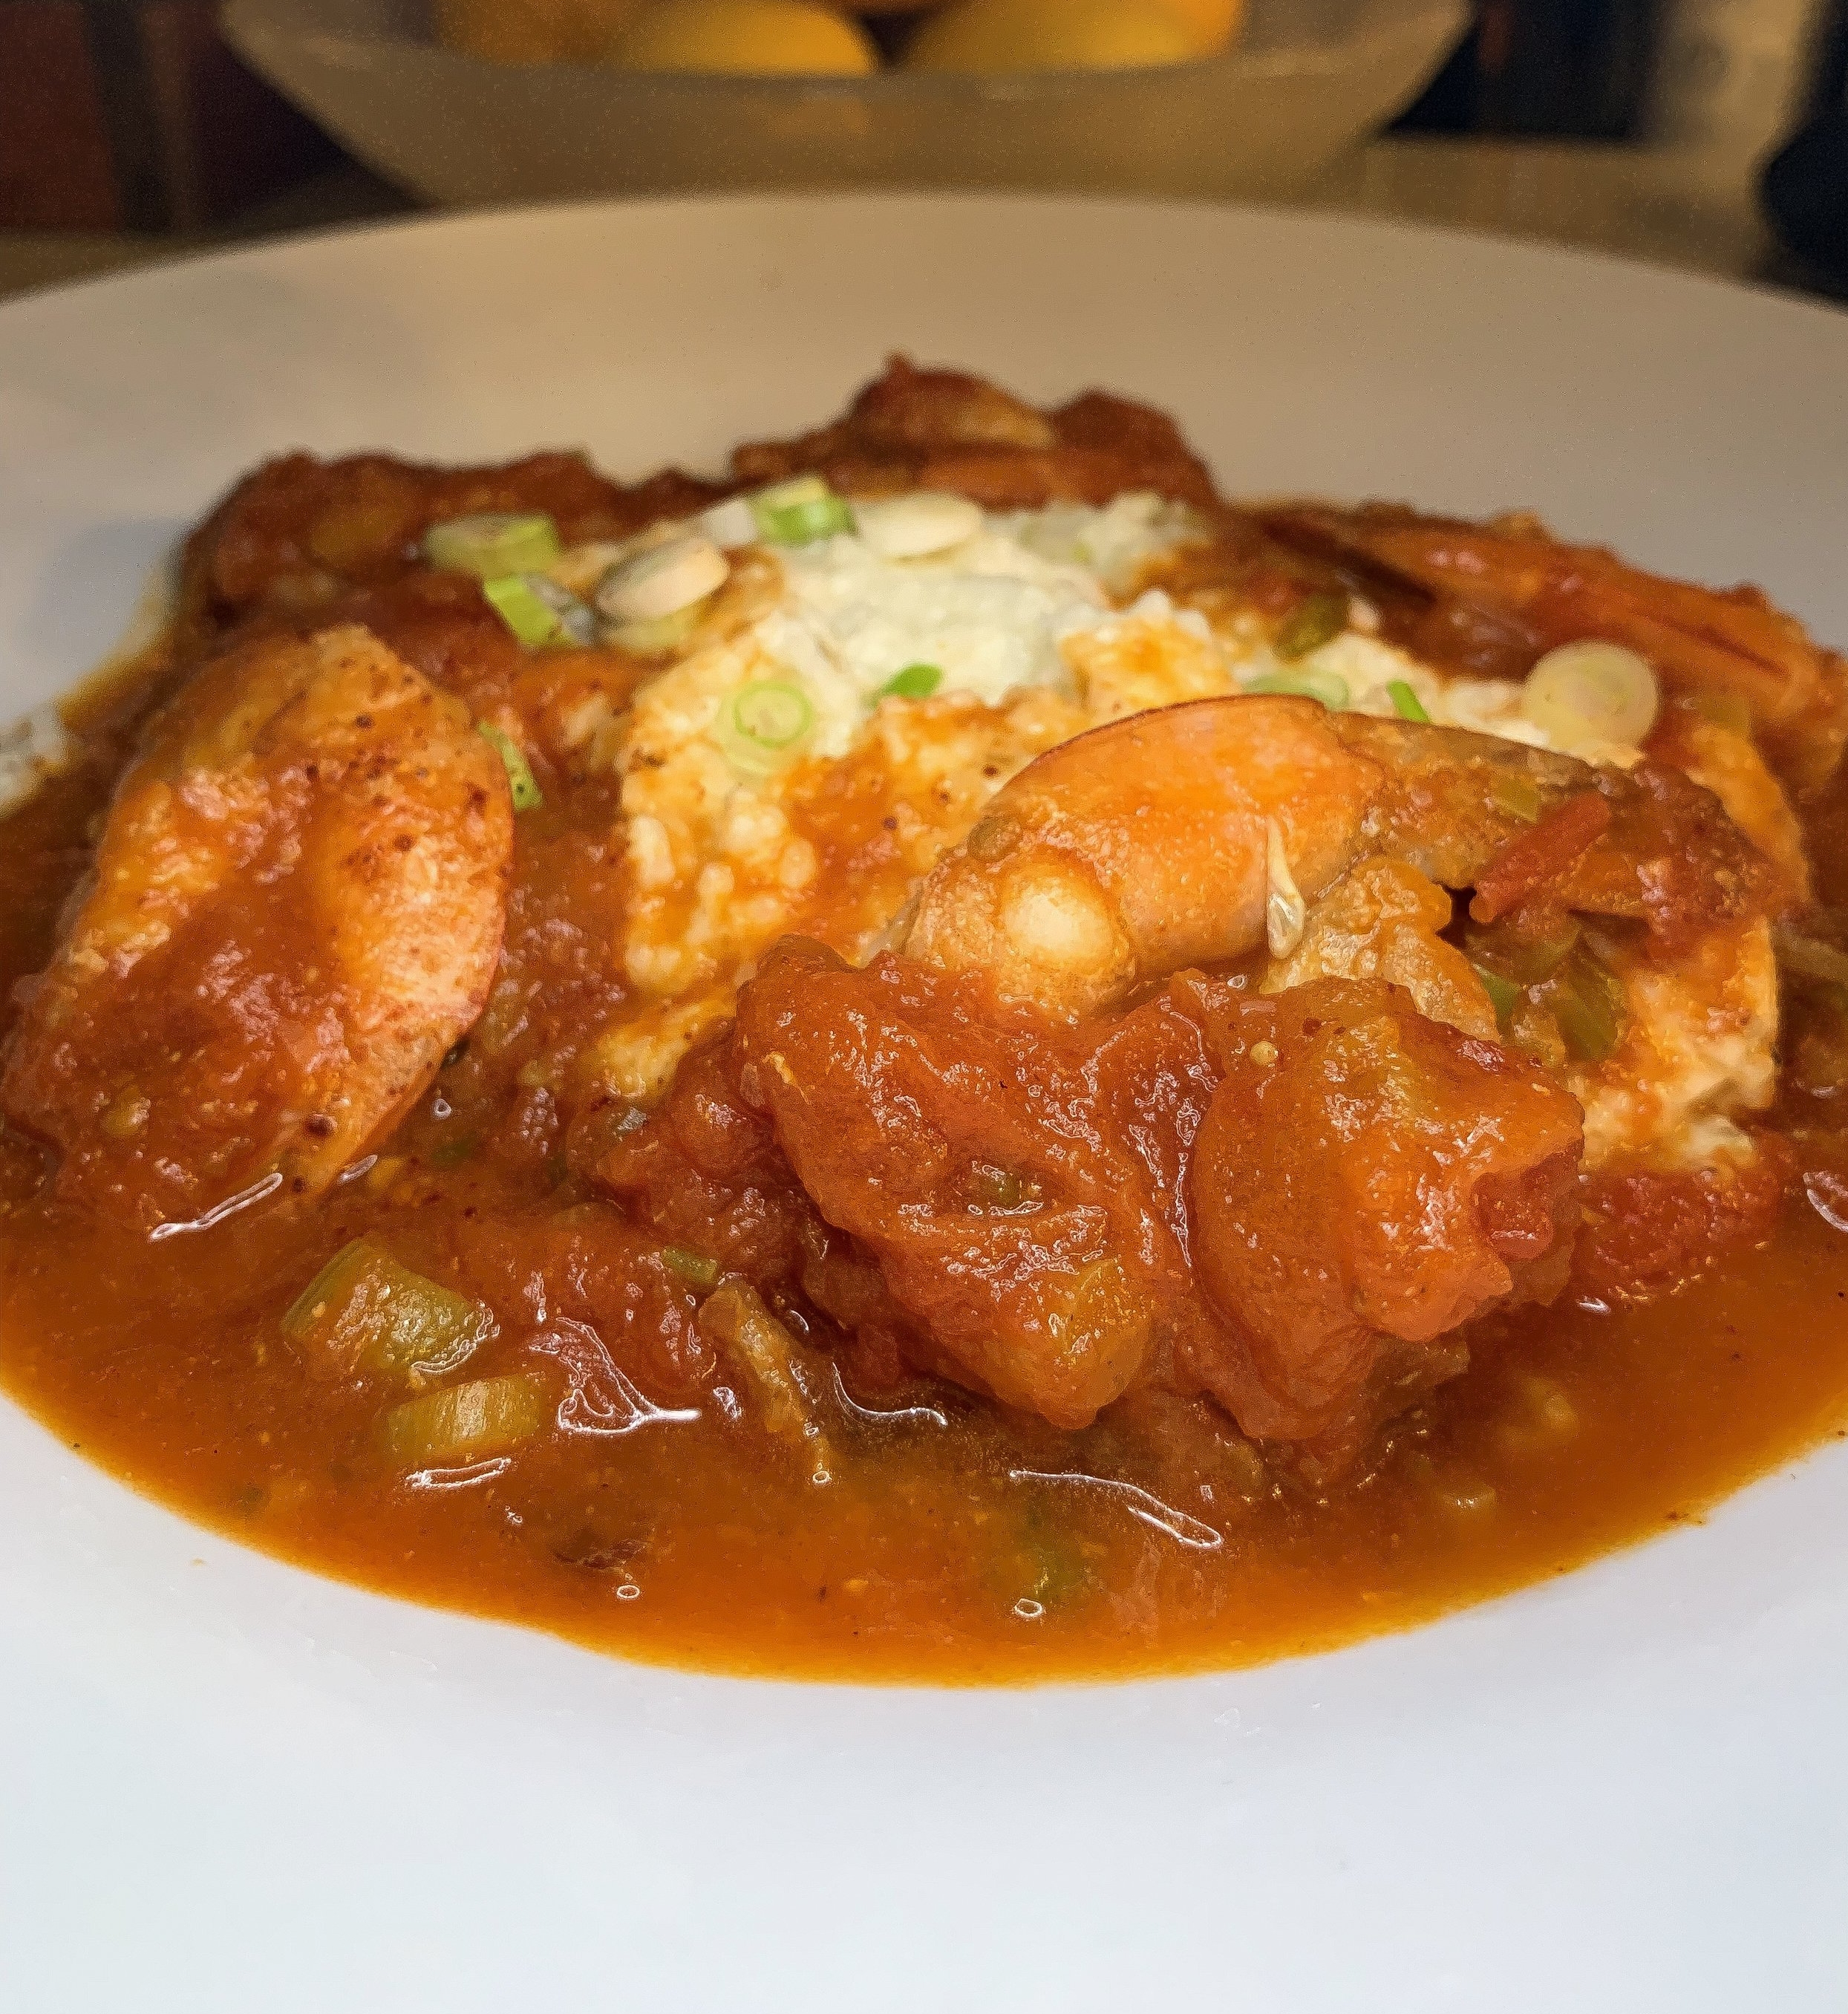 Lowcountry Shrimp and Grits - spit roasted pork, grits, tomatoes, scallions, roast shrimp broth